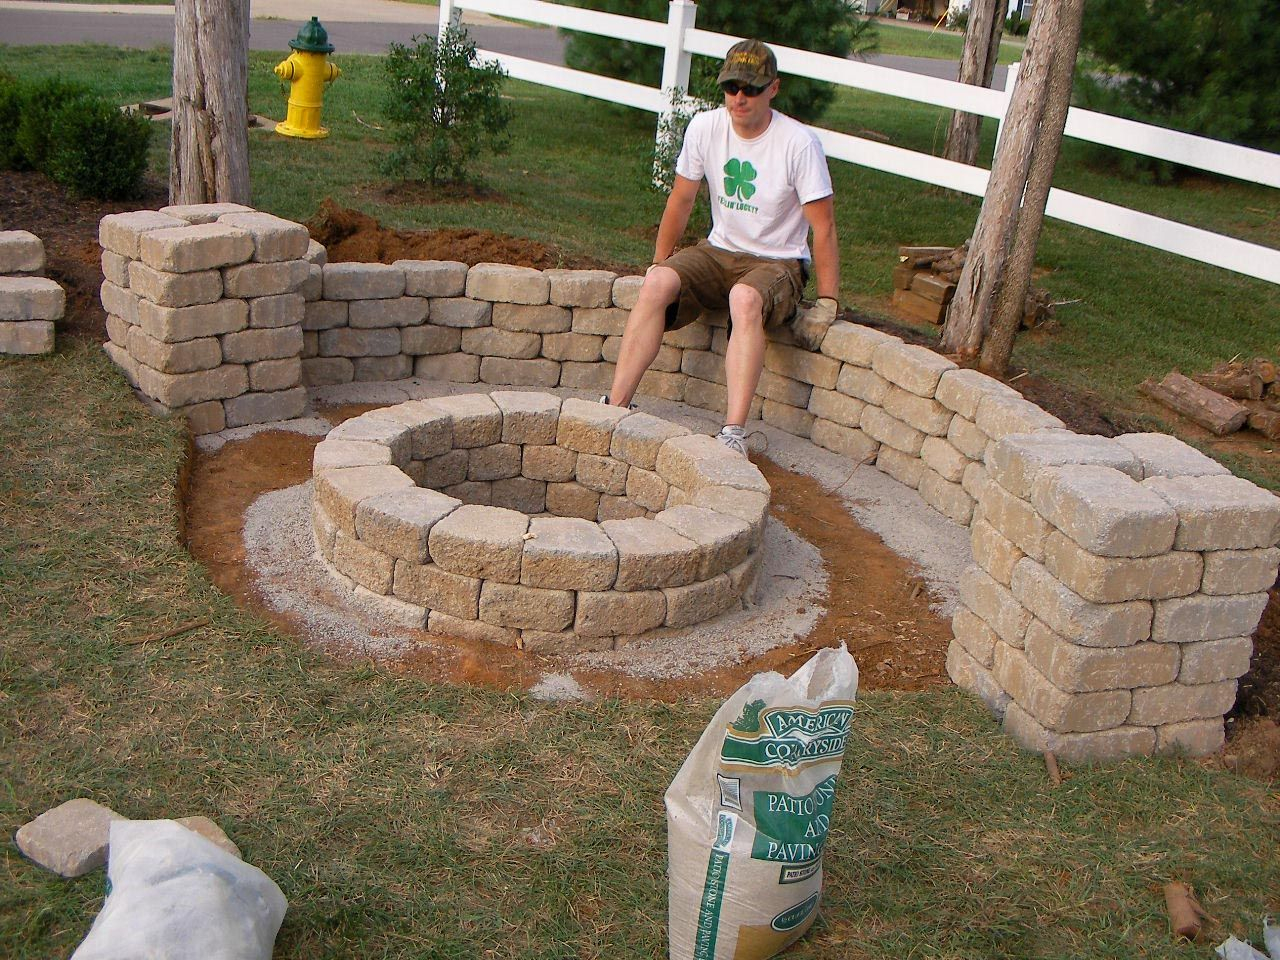 Easy Backyard Fire Pit Designs Firepits Fire in 15 Smart Concepts of How to Make Fire Pit Ideas For Small Backyard